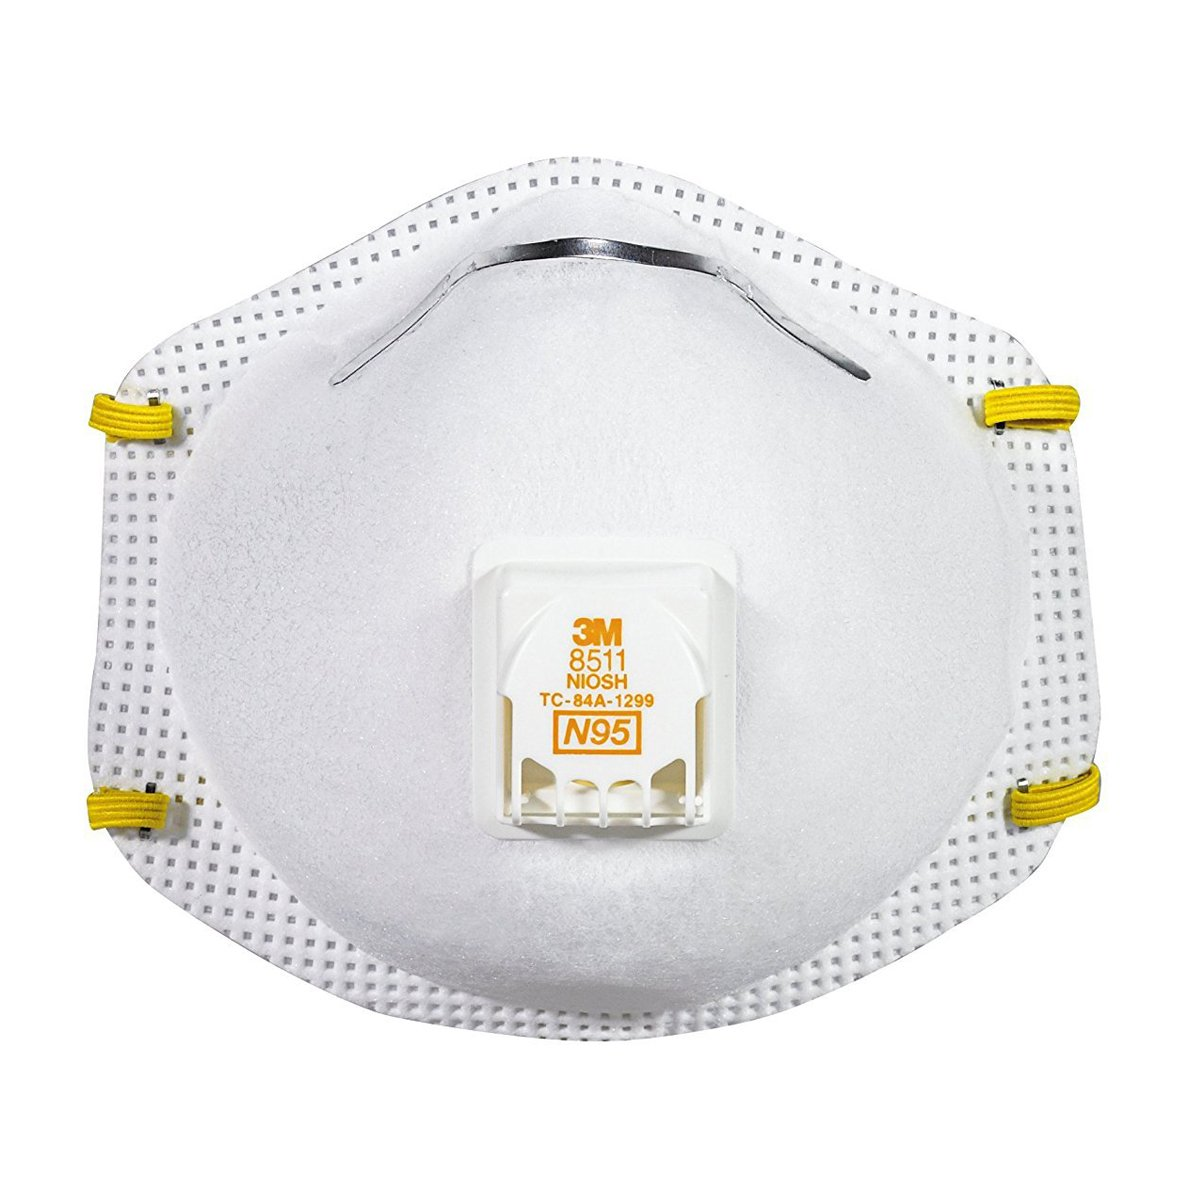 n95 mask disposable 3m